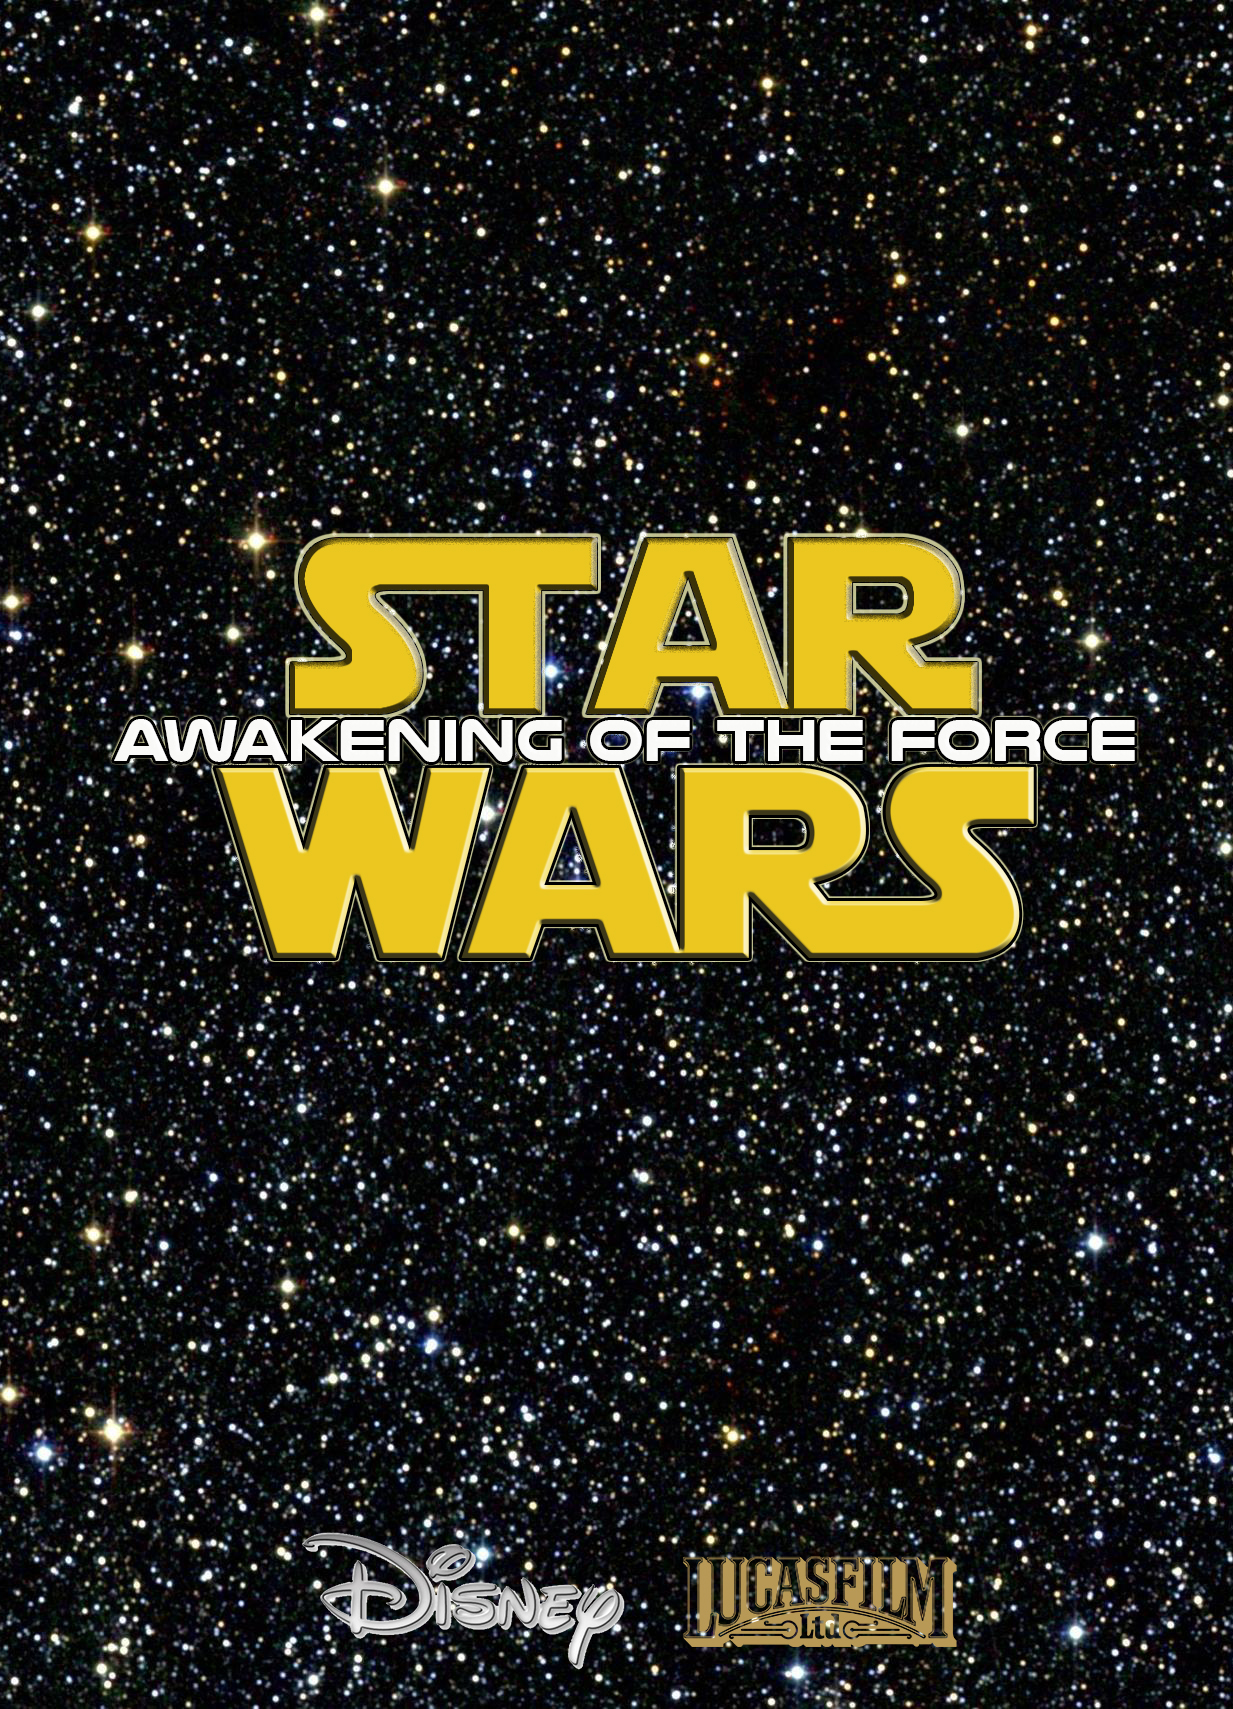 Star Wars Episode VII: Awakening of the Force